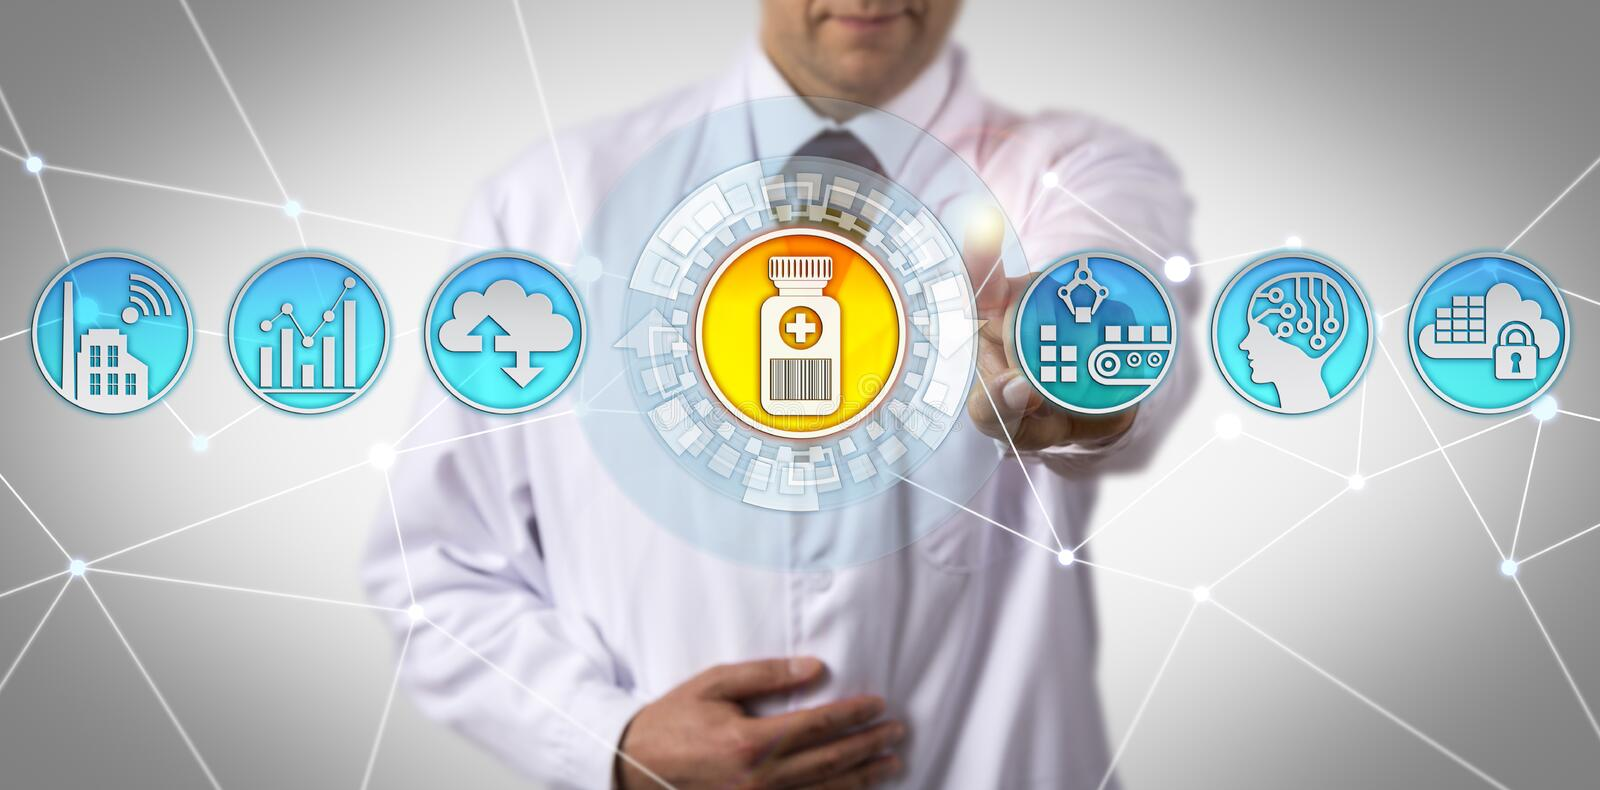 Scientist Checking Serialization In Supply Chain royalty free stock photos